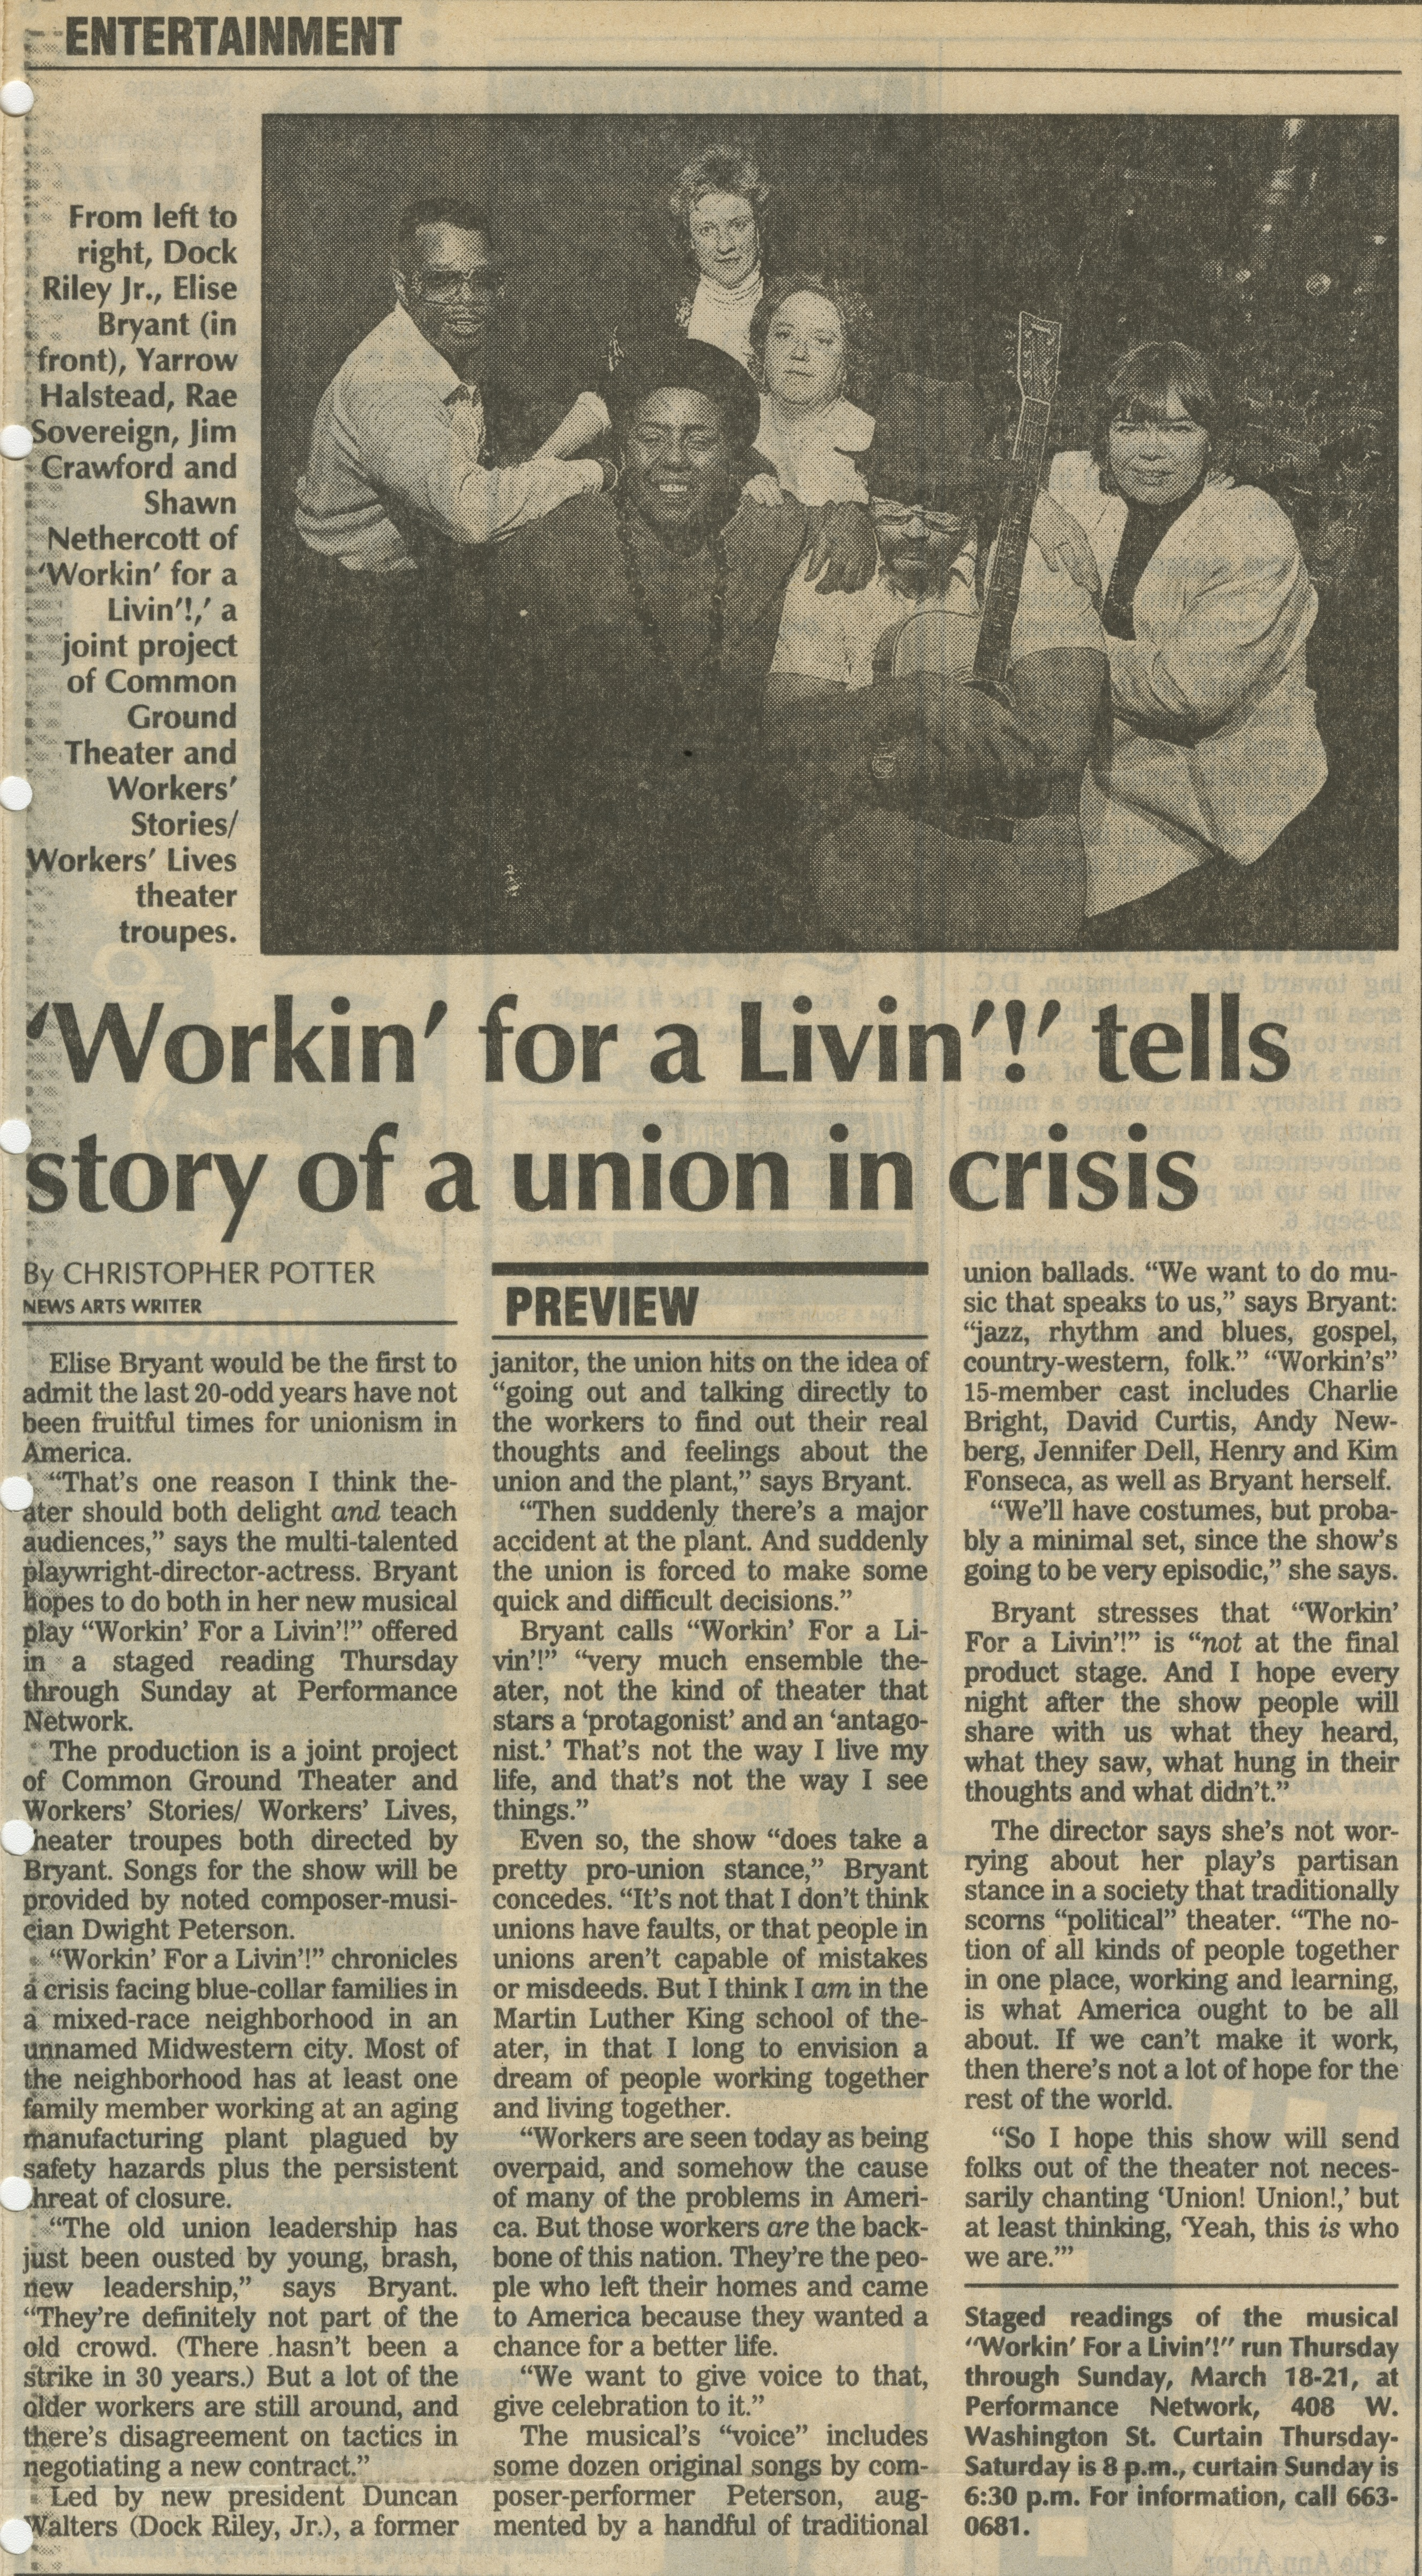 'Workin' for a Livin'!' tells story of a union in crisis image